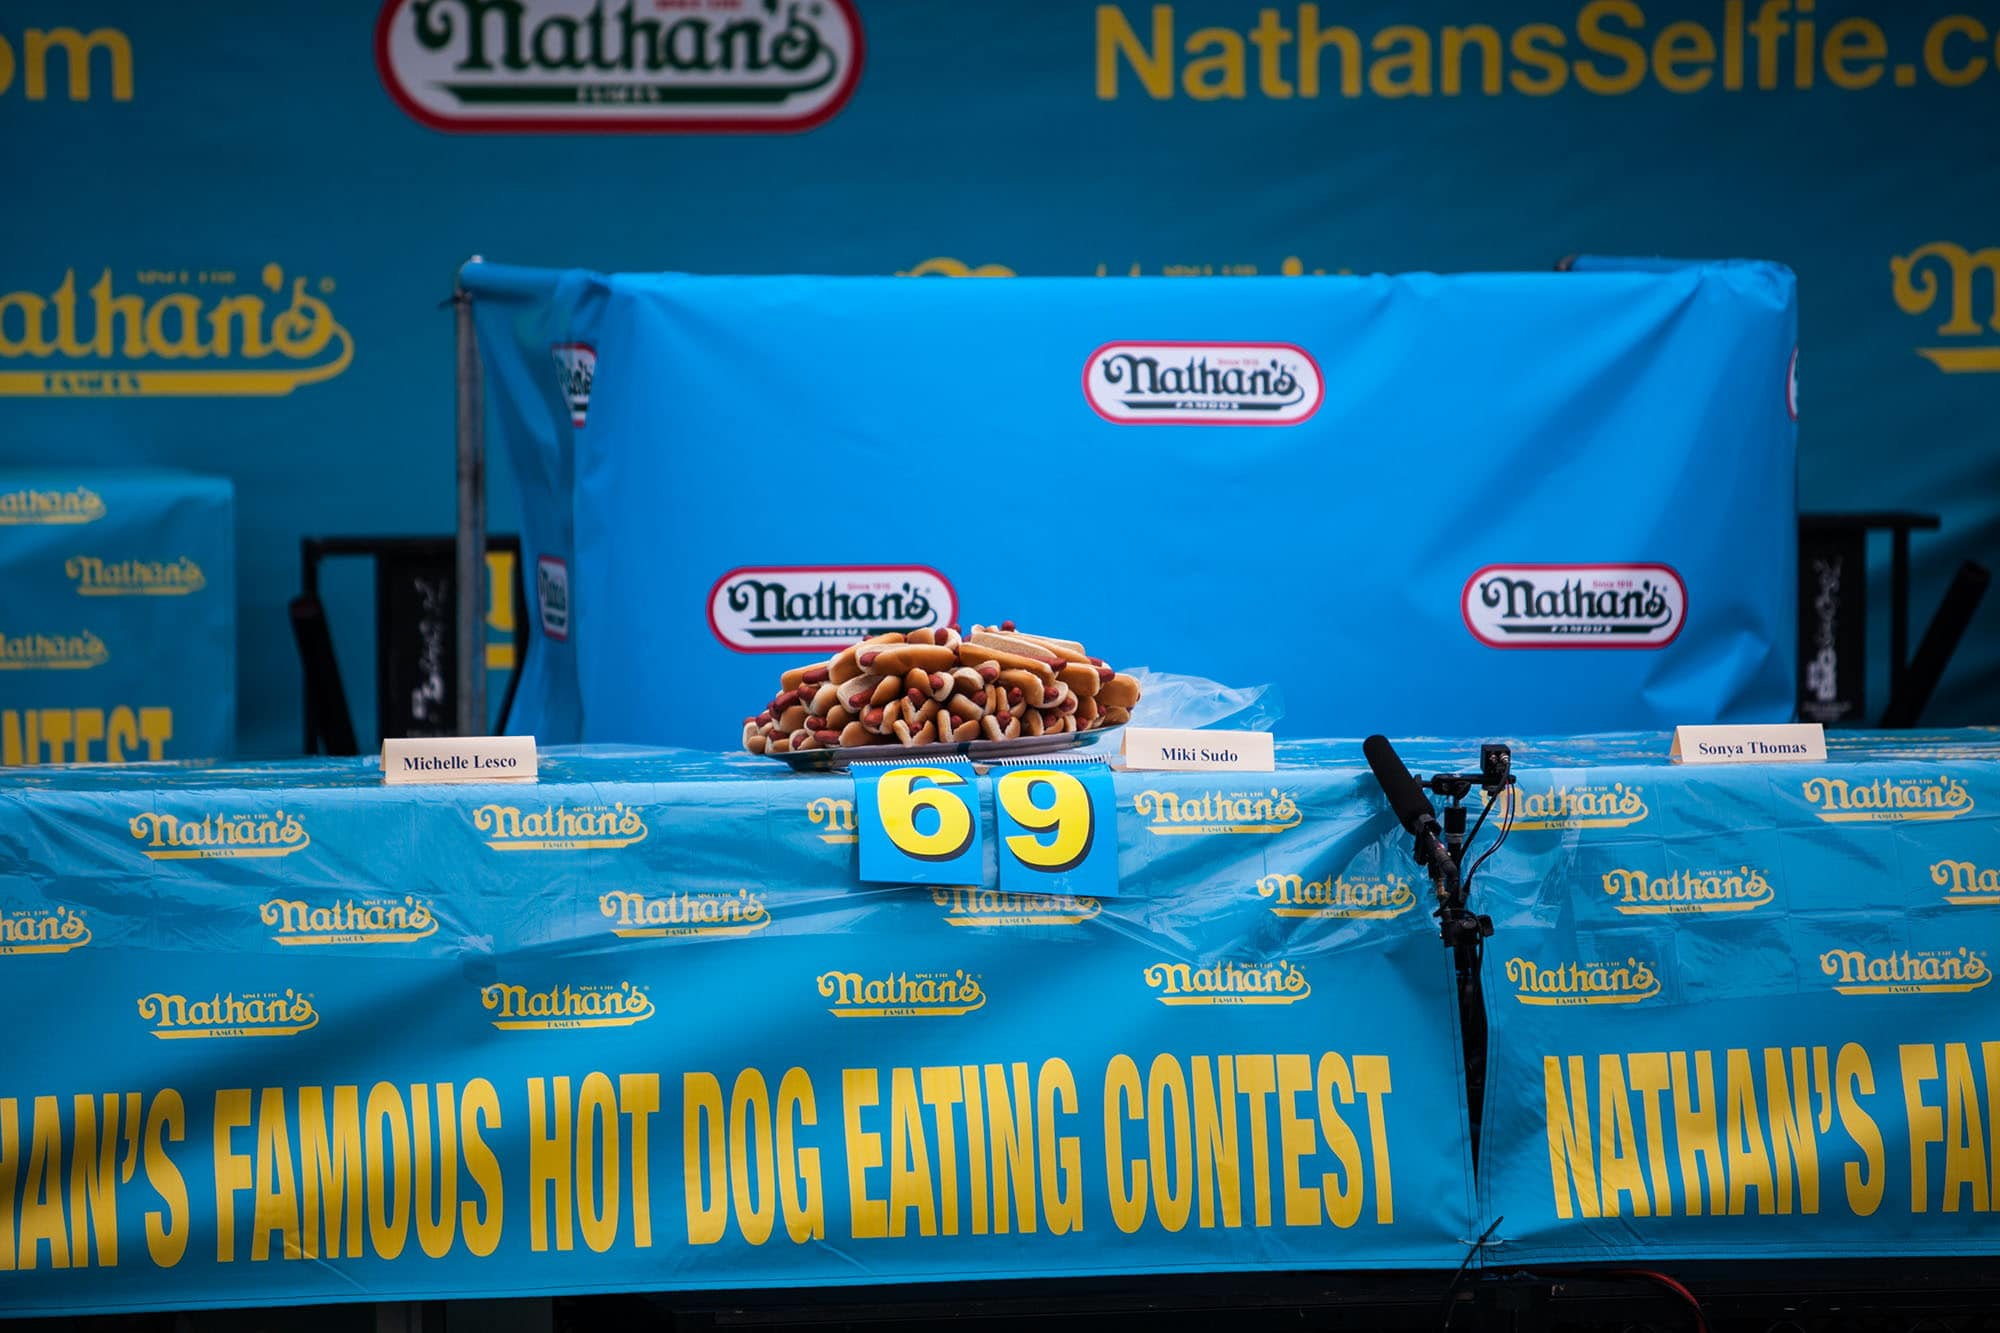 World Record 69 Hot Dogs - Nathan's Famous July 4 Hot Dog Eating Contest 2015